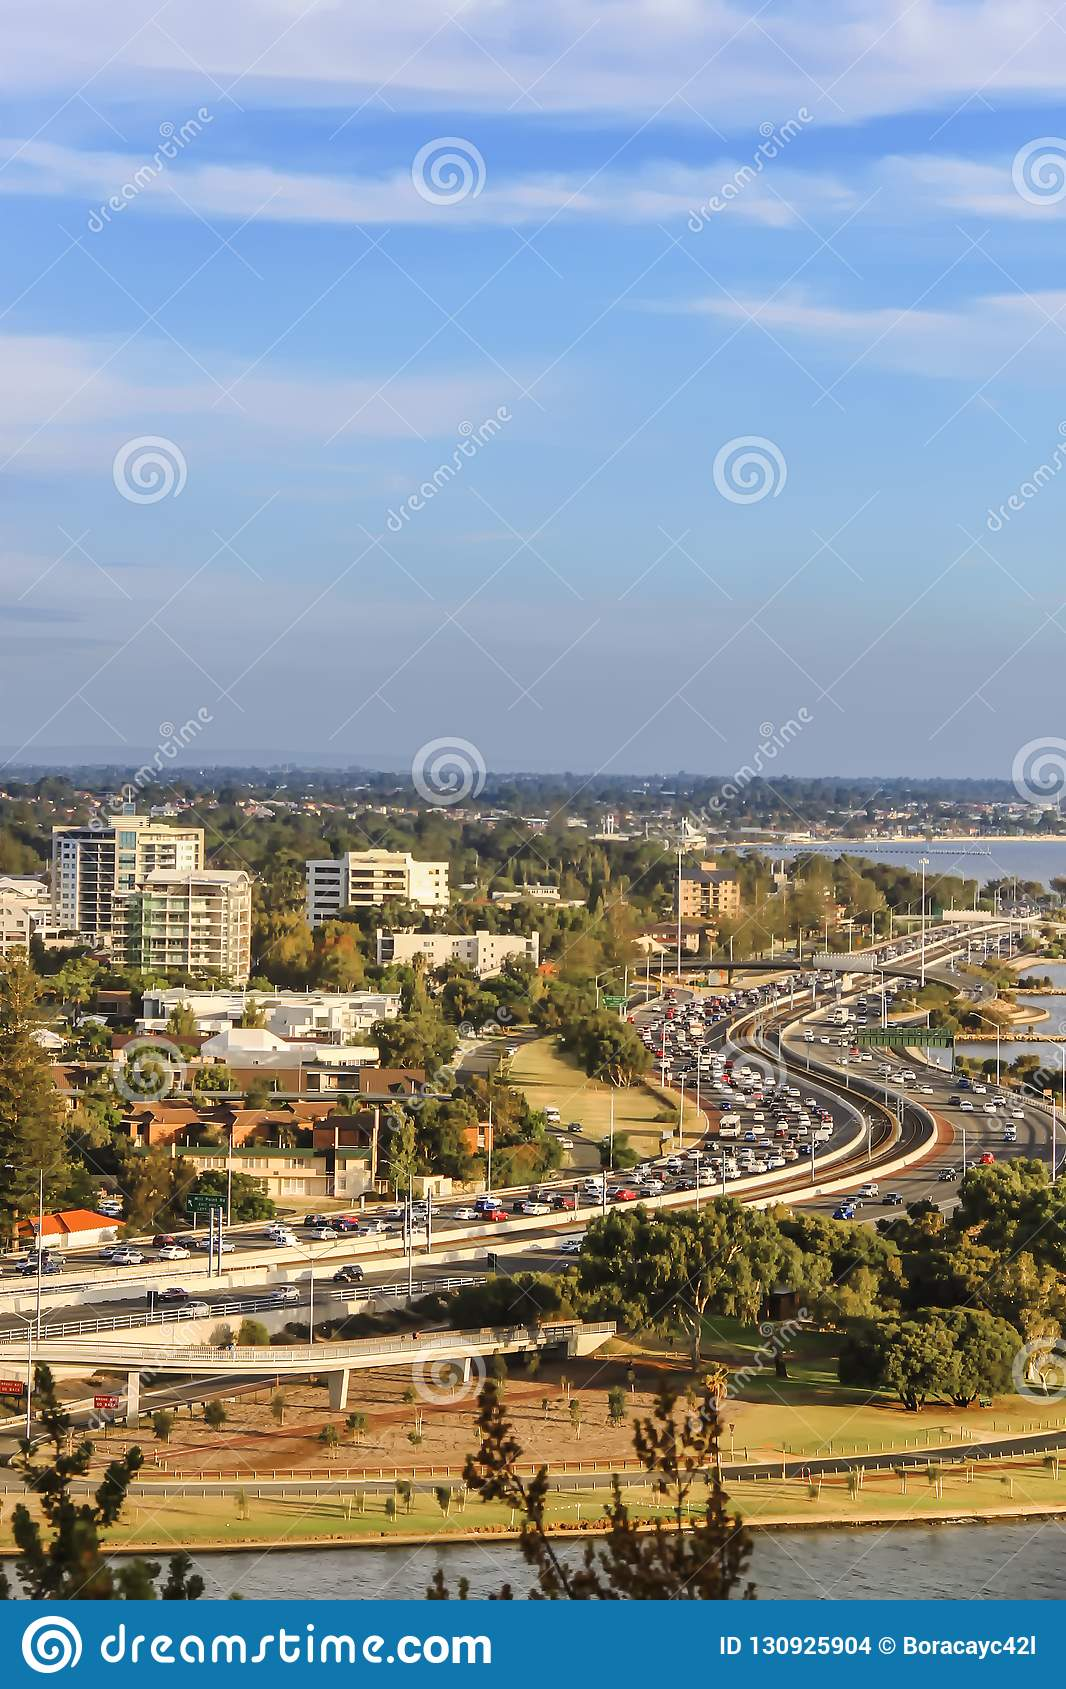 View of South of Perth skyline and winding Kwinana Freeway